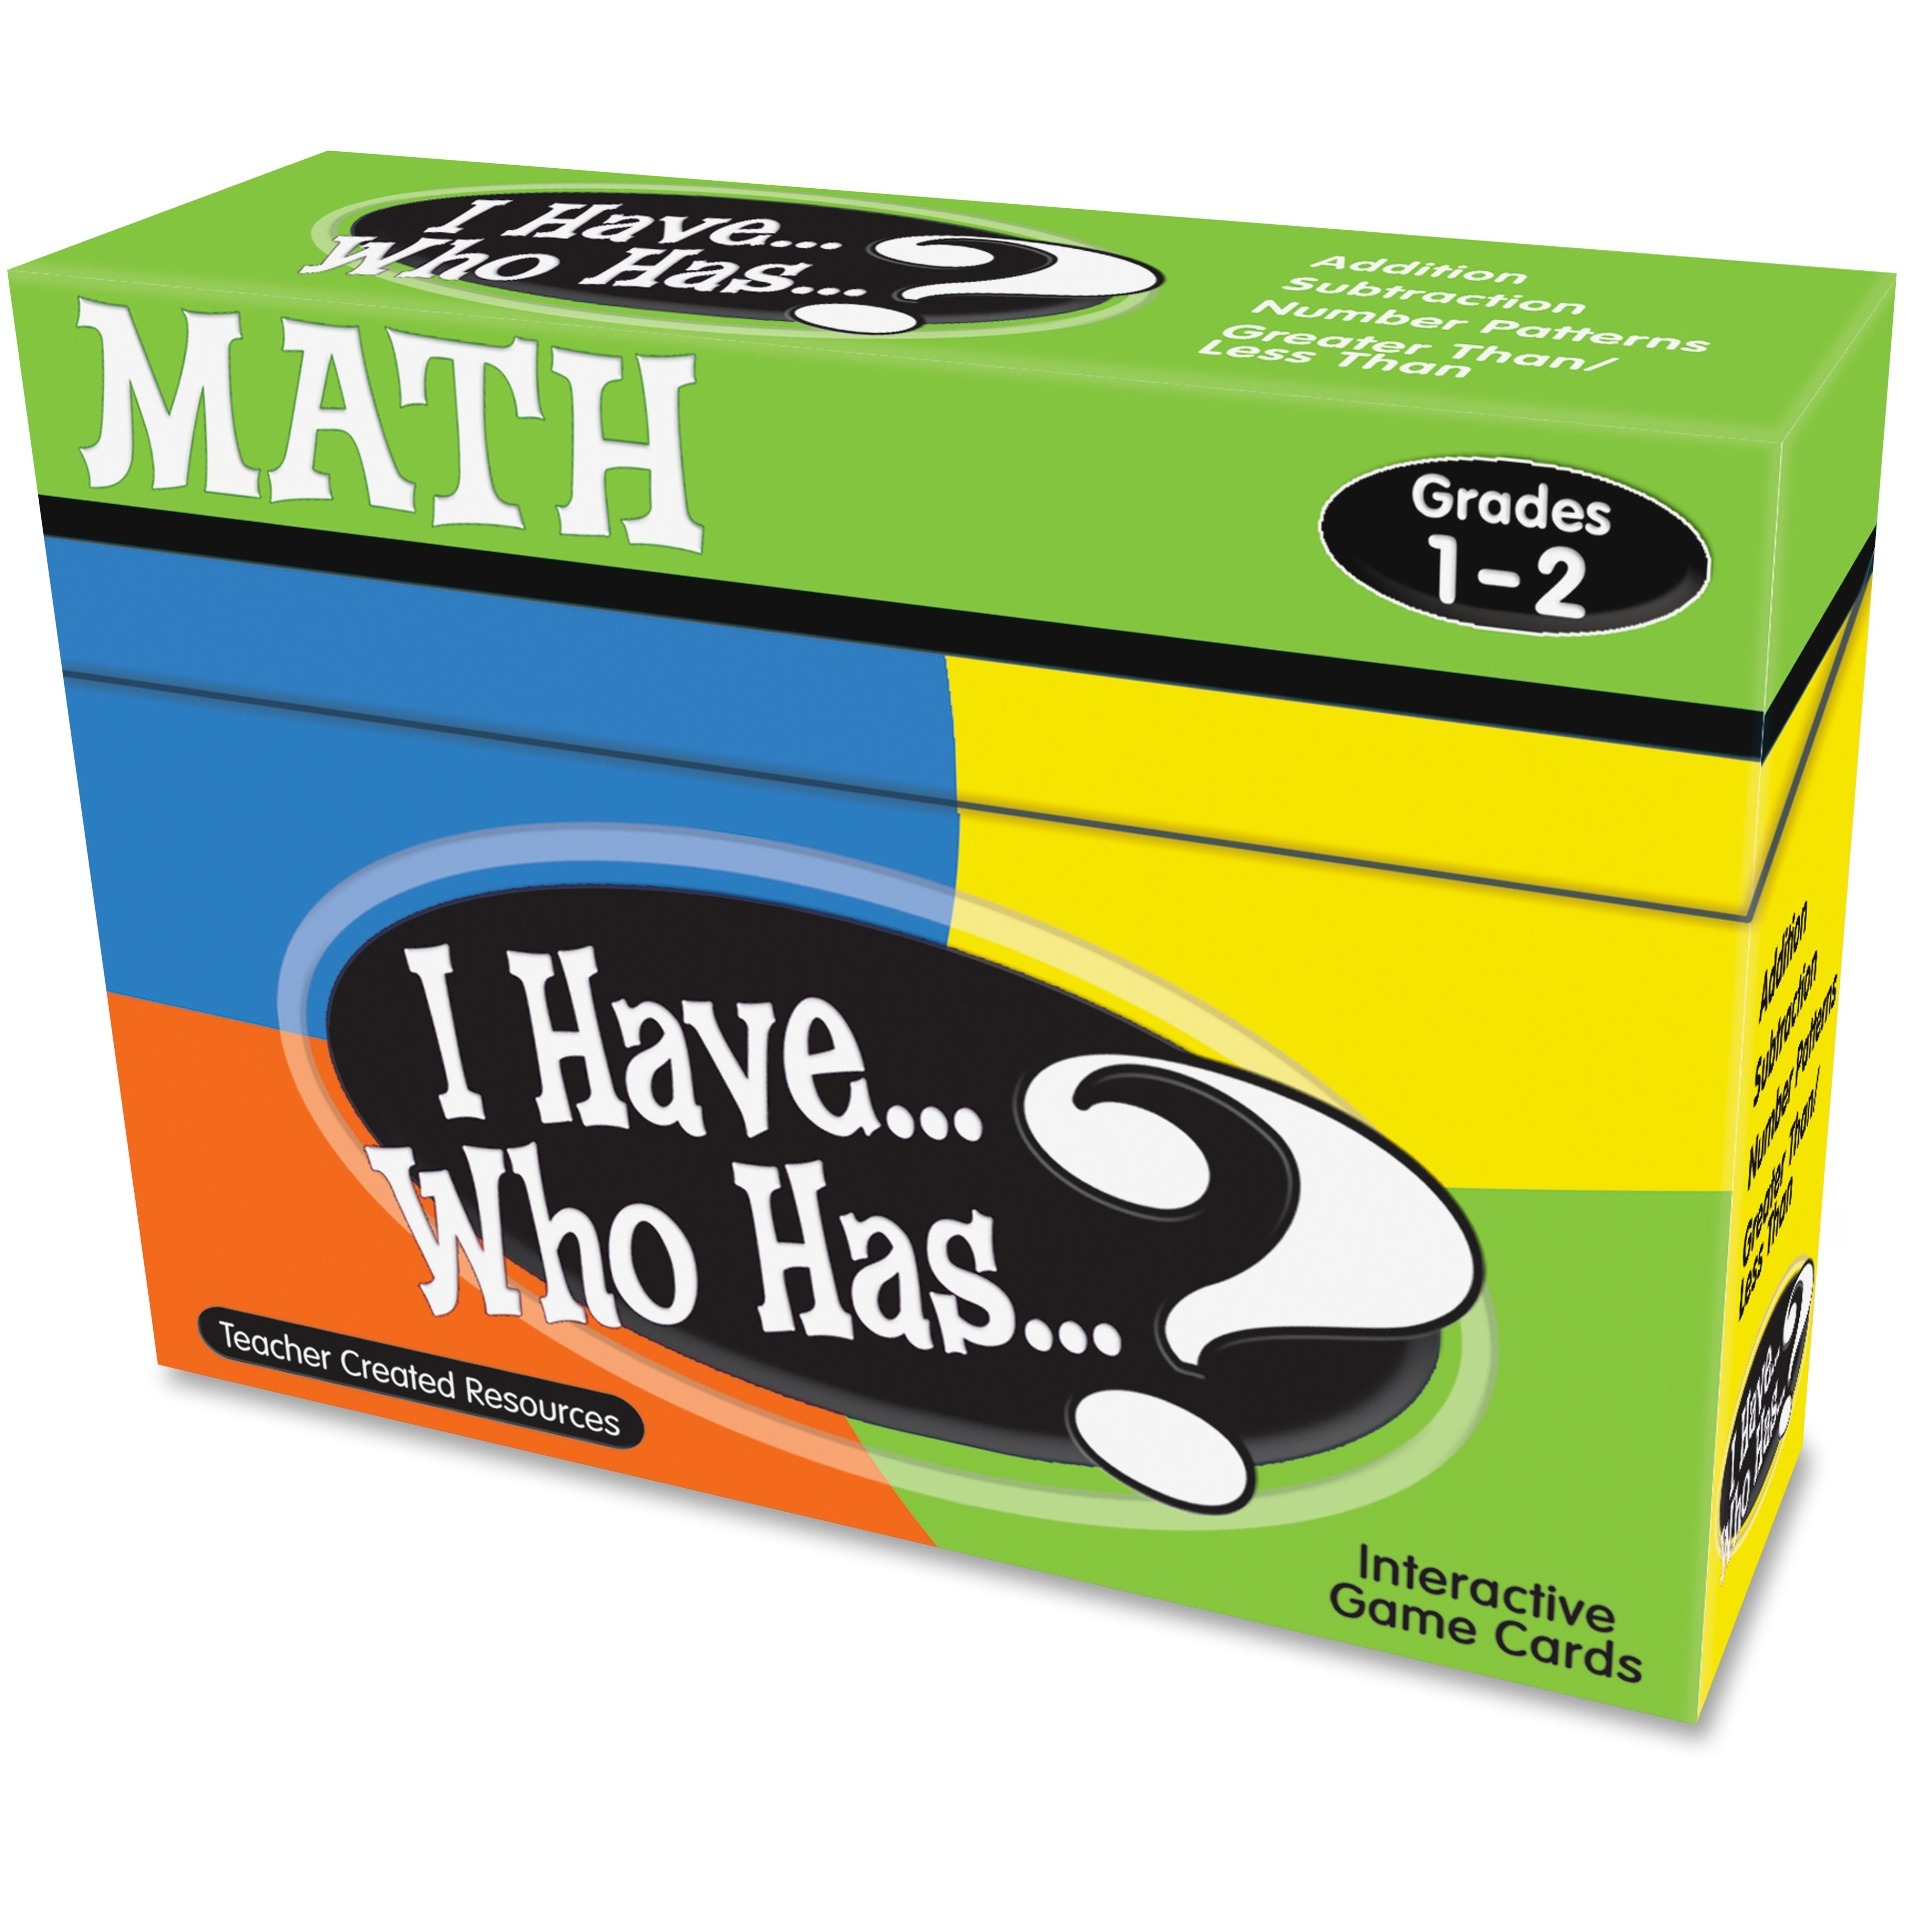 Teacher Created Resources, TCR7817, 1&2 I Have Who Has Math Game, 1 Each, Multi